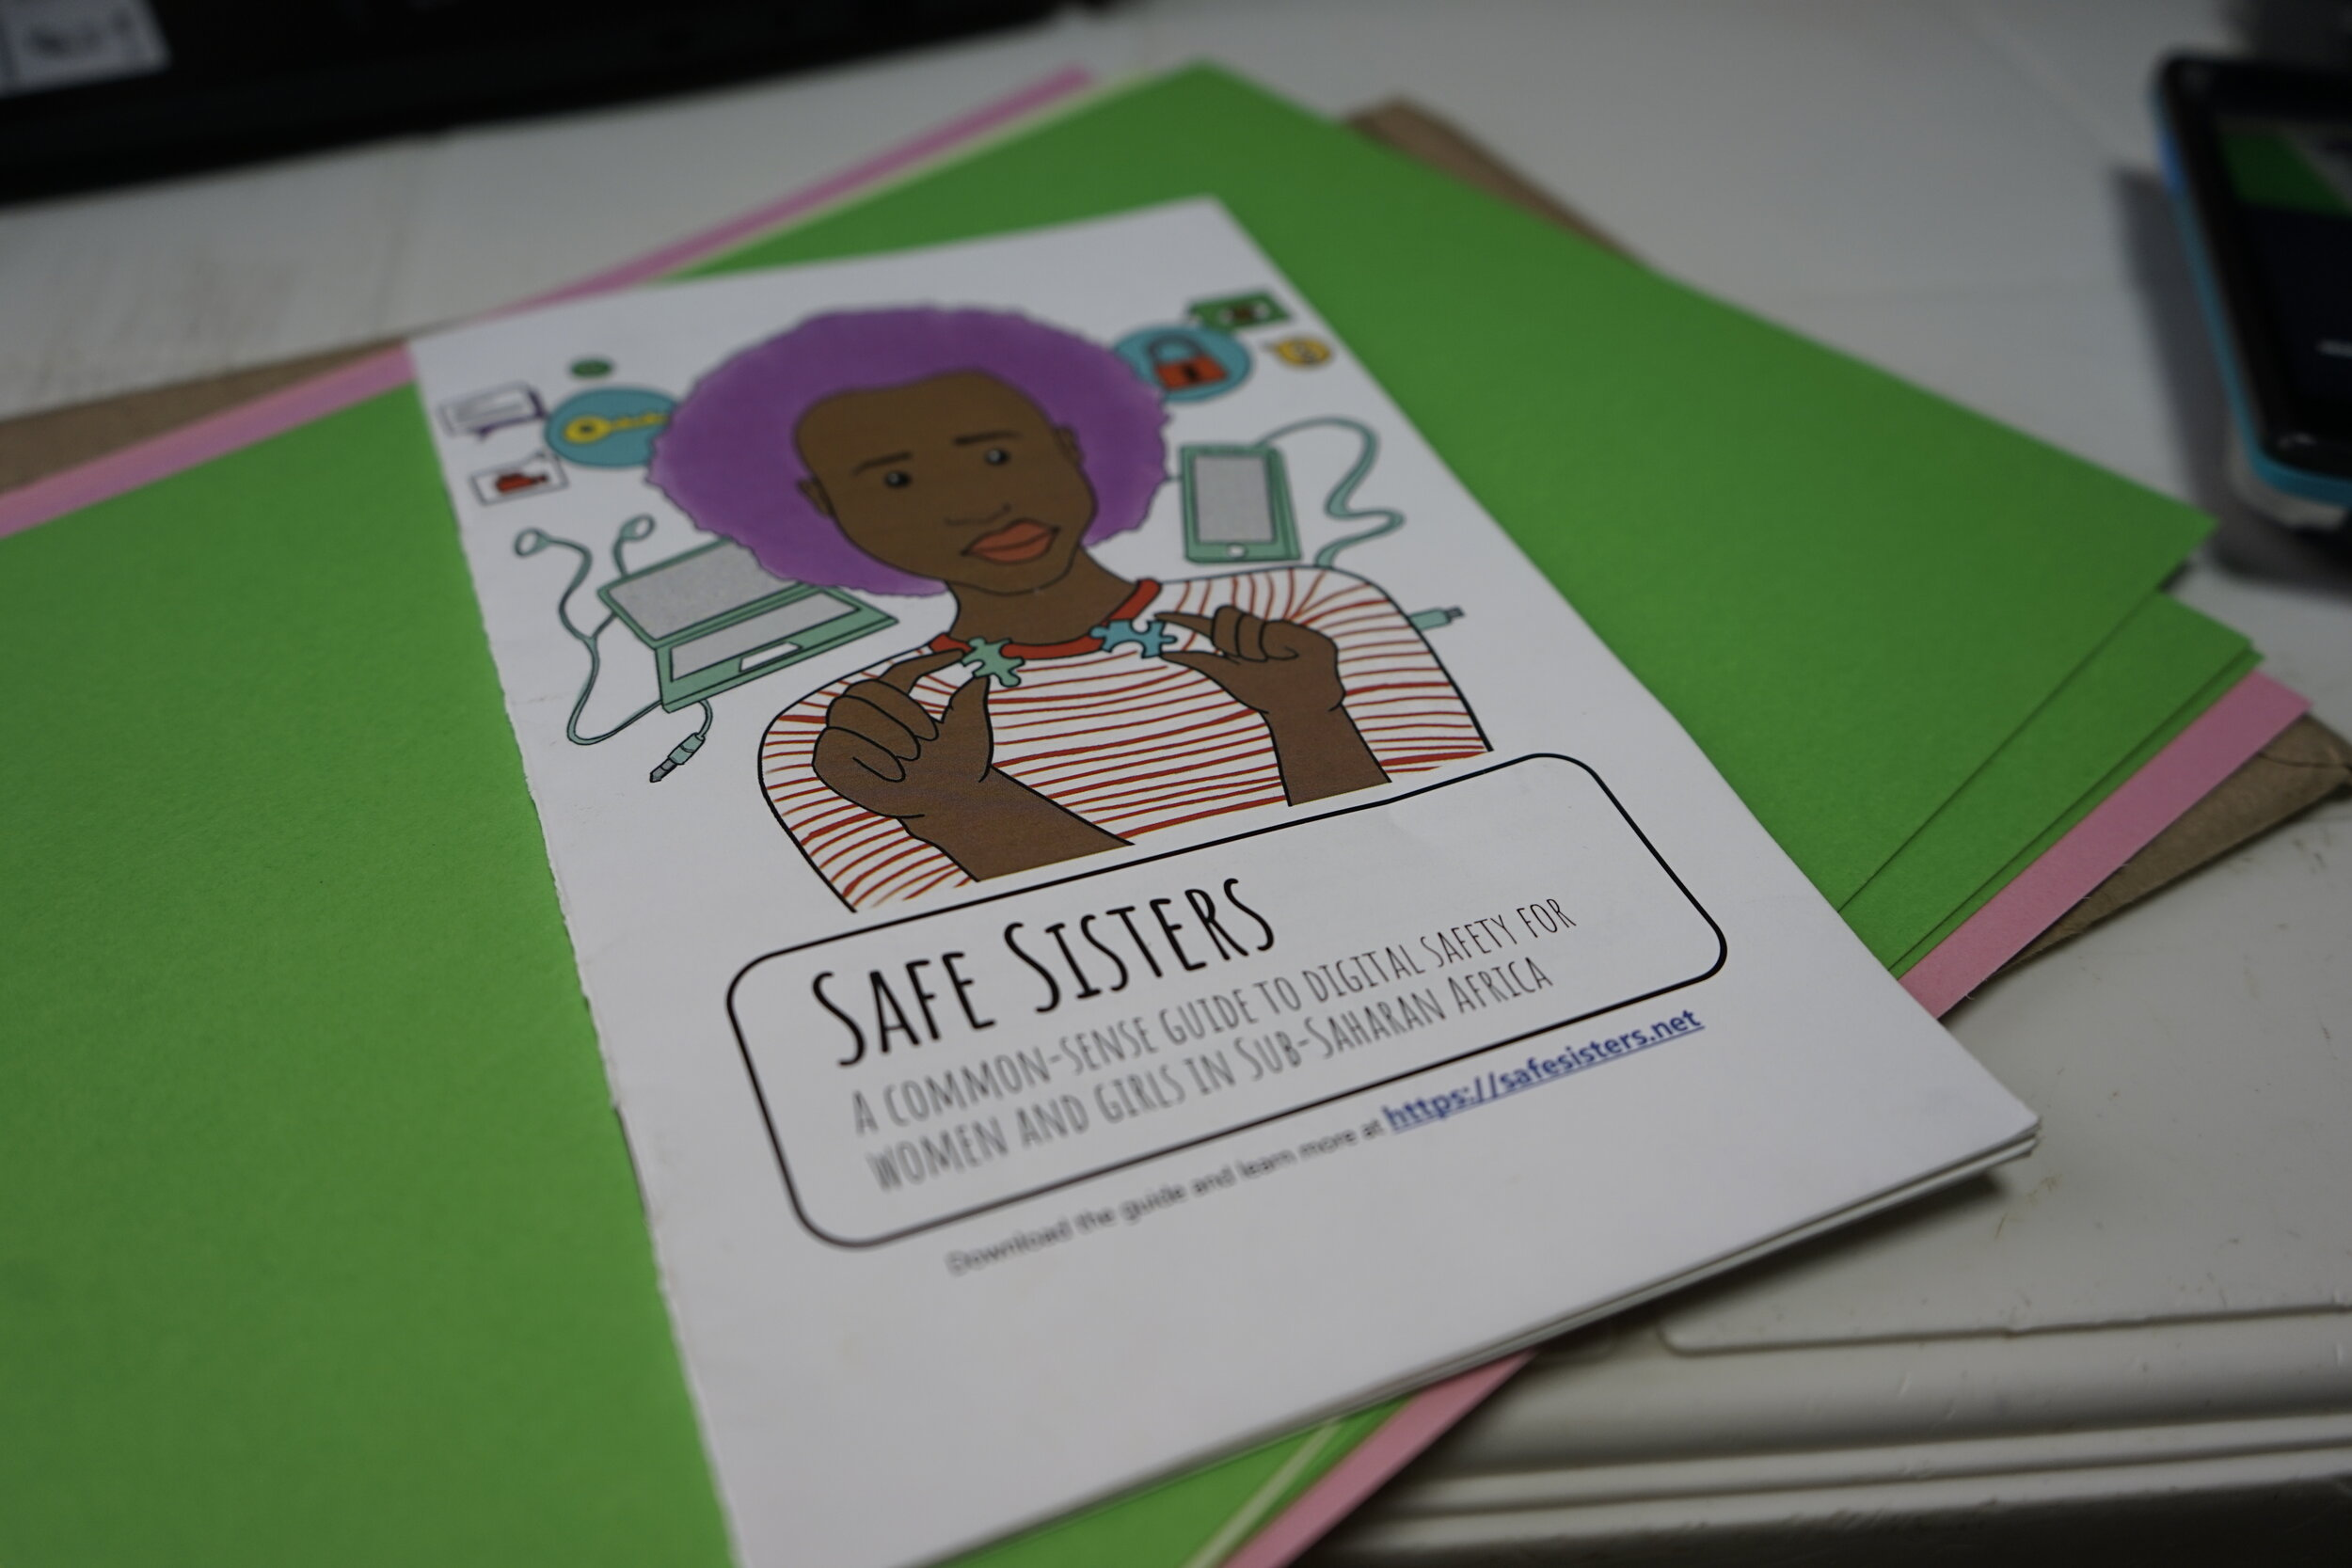 The Safe Sisters digital safety guide.